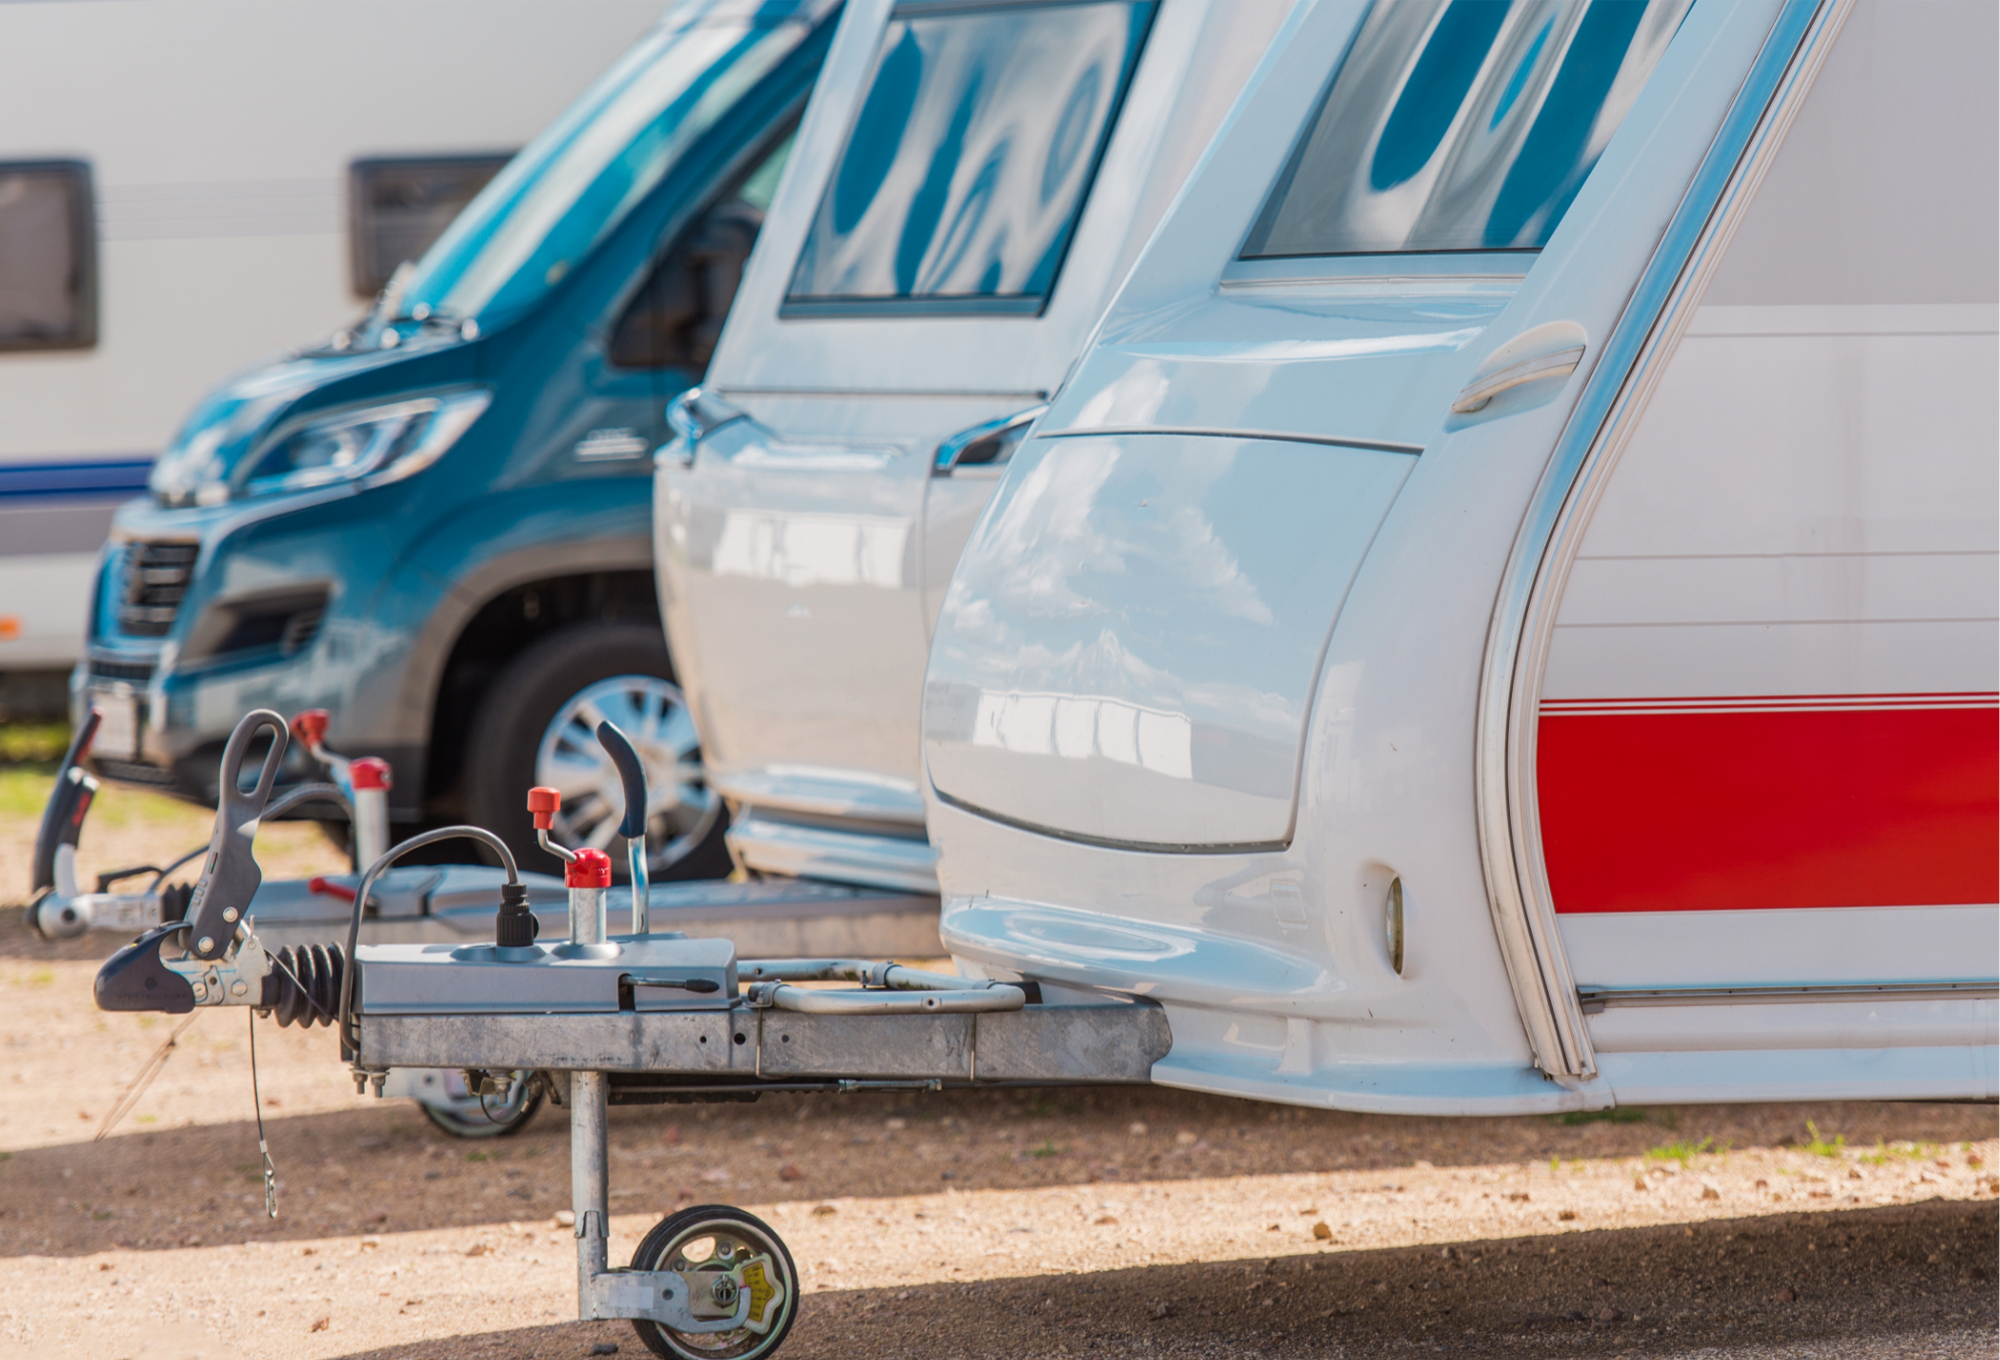 image of outdoor storage for boats, trailers, RVs